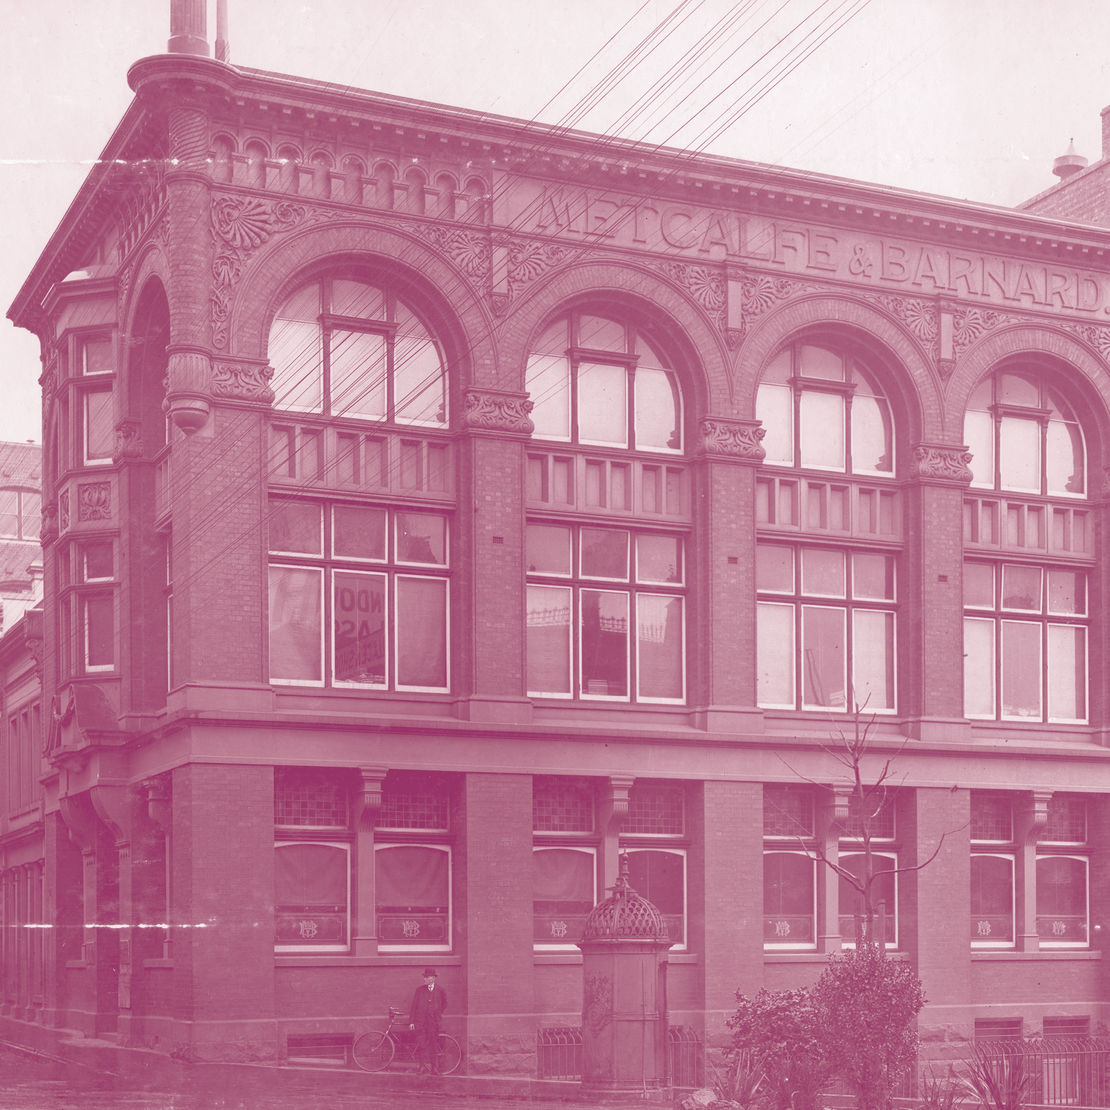 145 Flinders Lane in approx 1913. Image: University of Melbourne Archives